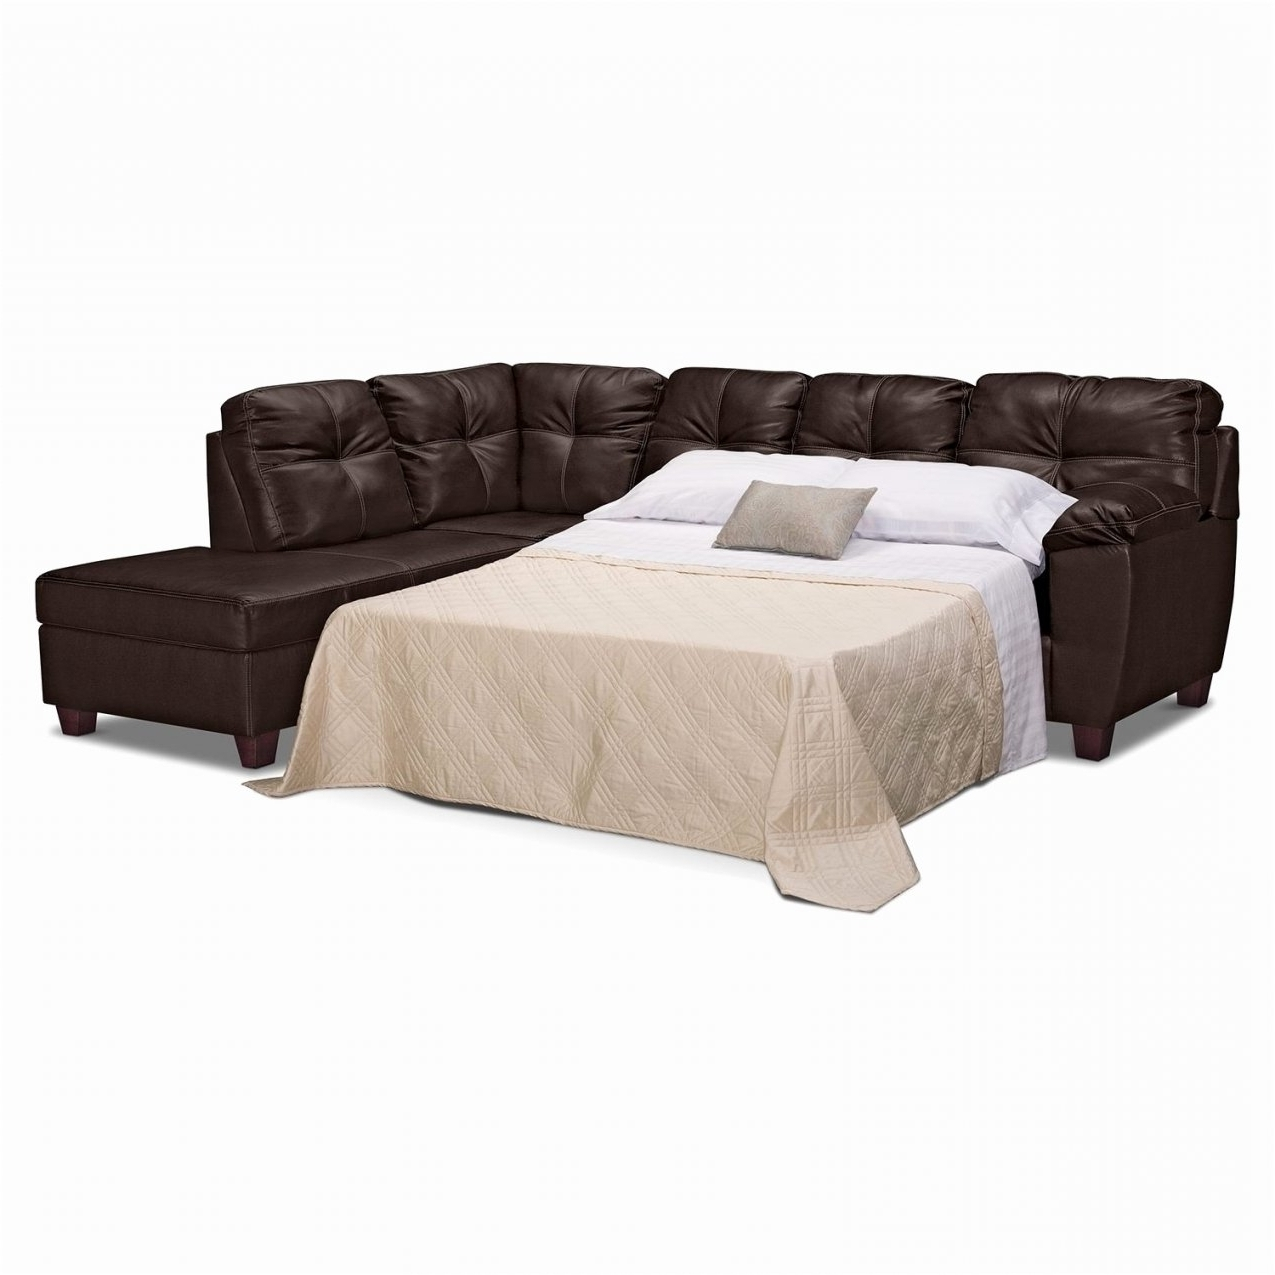 2017 Ikea Sectional Sleeper Sofas In Sleeper Sofa Ikea Sectional Sofa Bed Fabric Sectional With Leather (View 1 of 15)